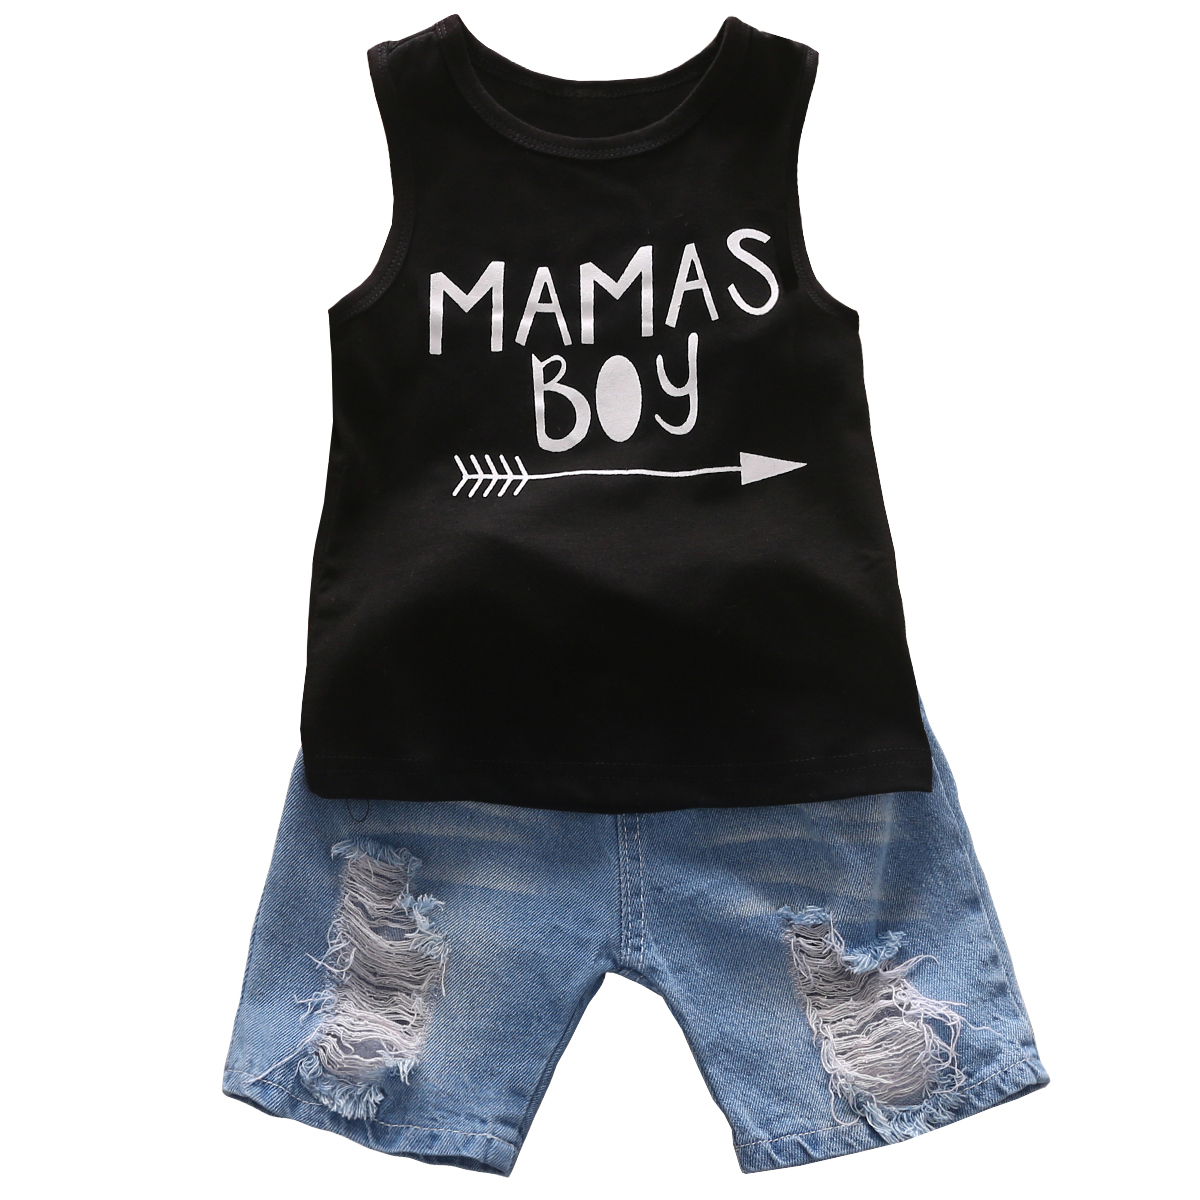 Cute Infant Baby MAMAS Boy Black Tank Tops+Jean Shorts Outfit Clothes Set Cotton Summer Toddler Boys Clothing